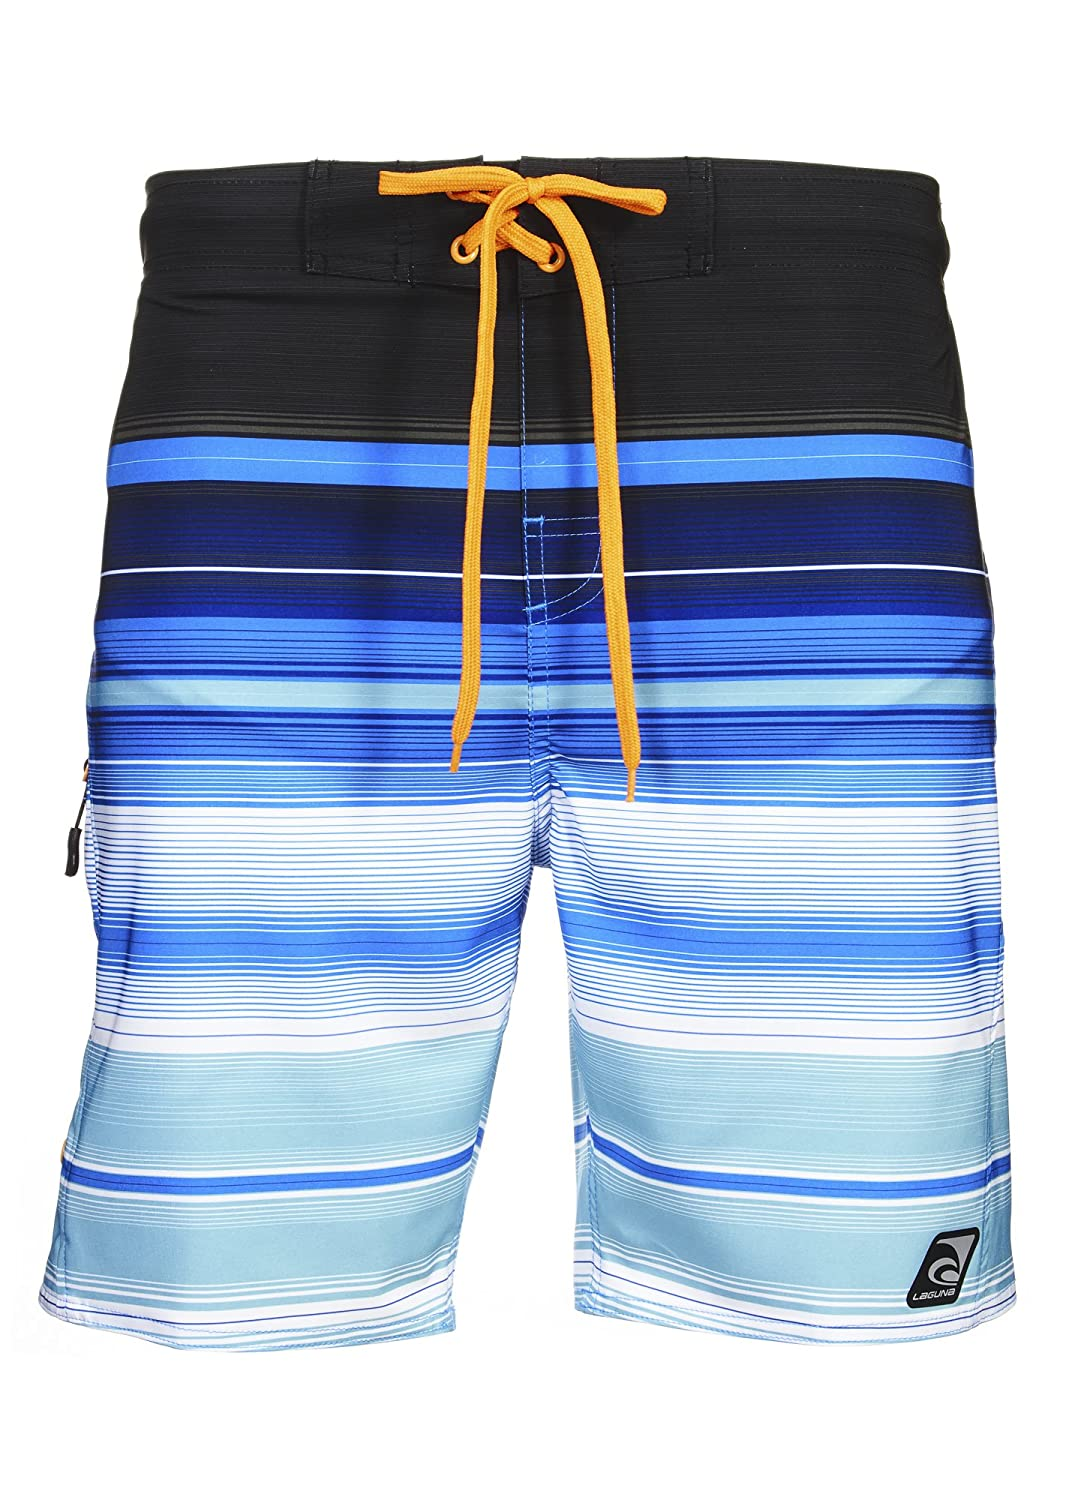 7e09325cba PALM TREE PRINT board shorts with the comfort of classic pull-on swim trunks  - Features blue and pattern with palm tree designs. ABOVE-KNEE CUT 8